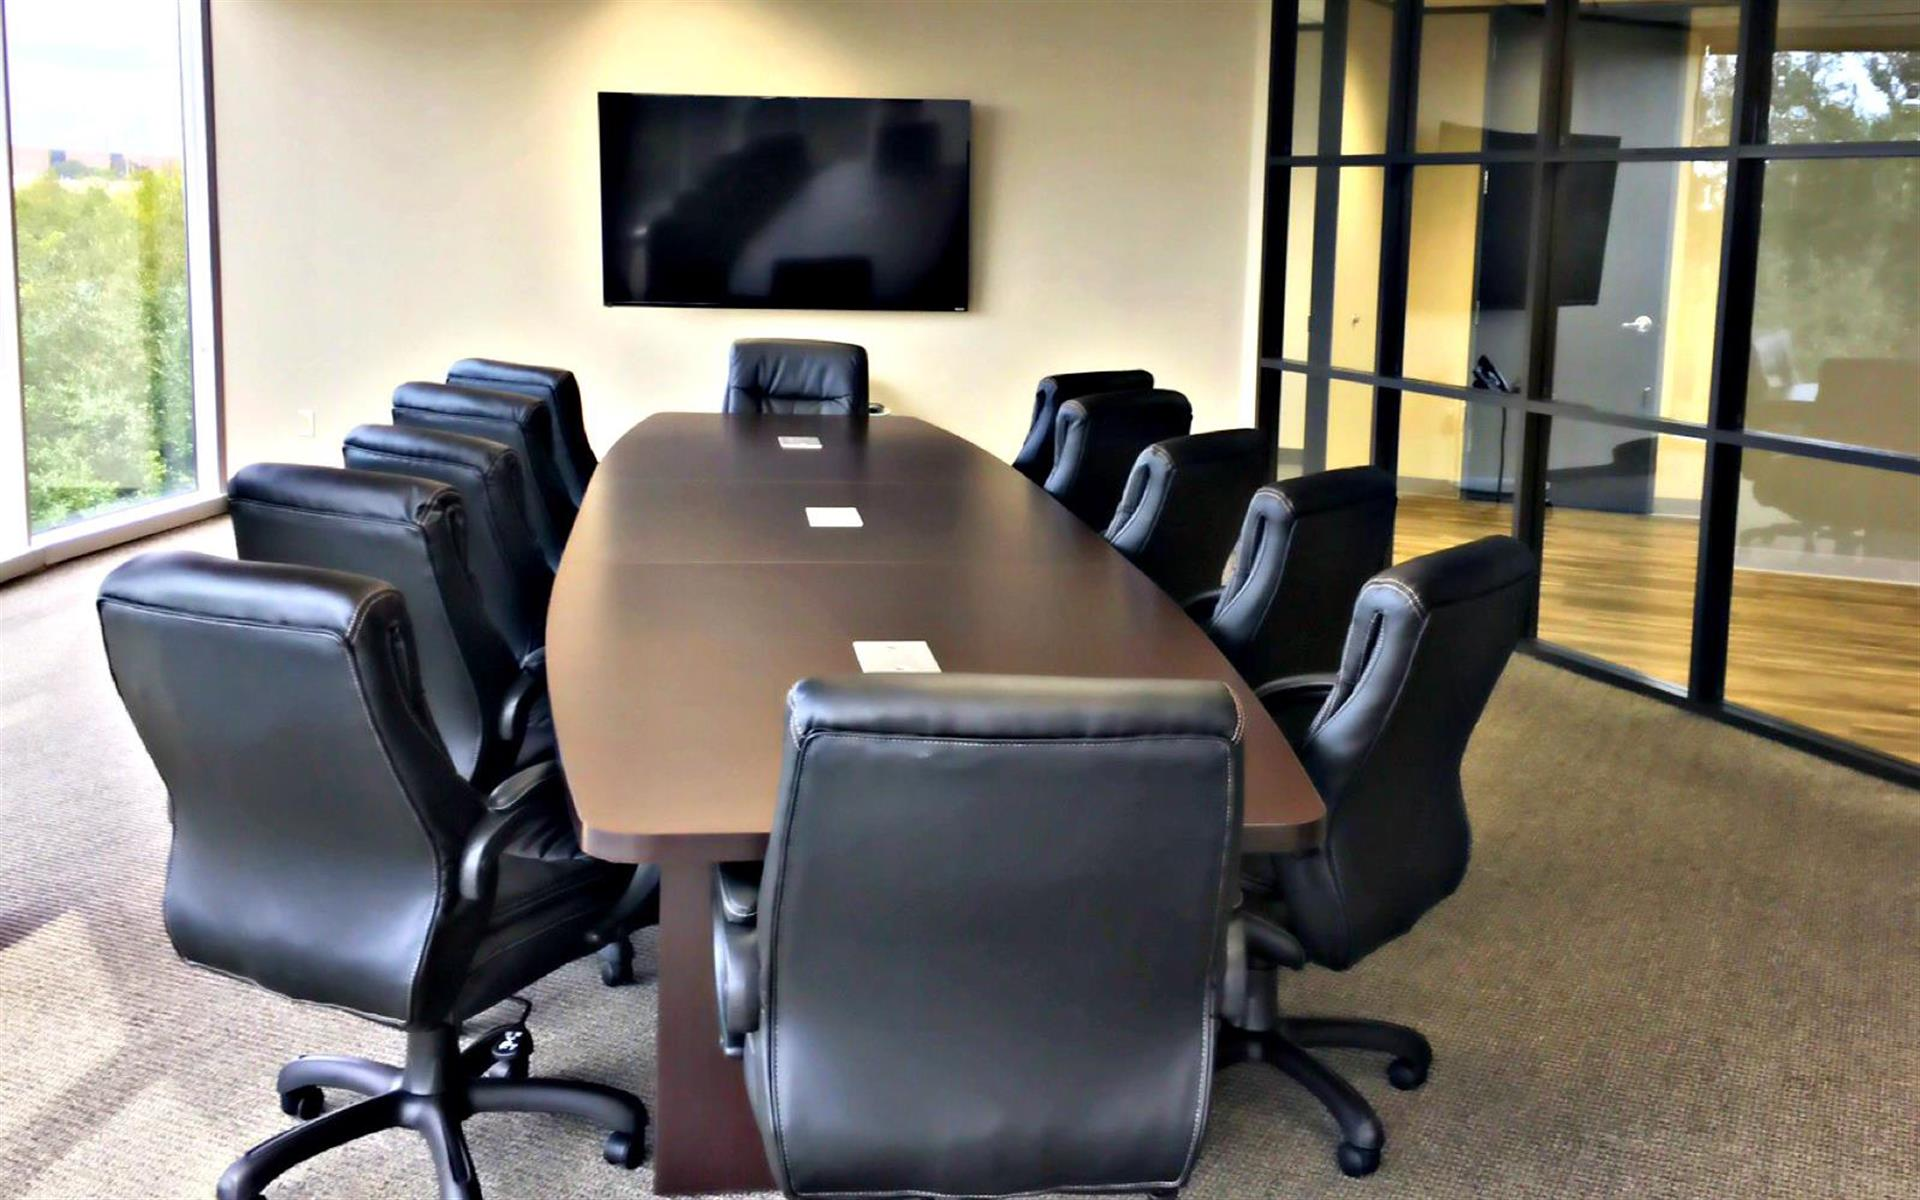 CUBExec - Interchange Building Executive Suites - Large Conference Room